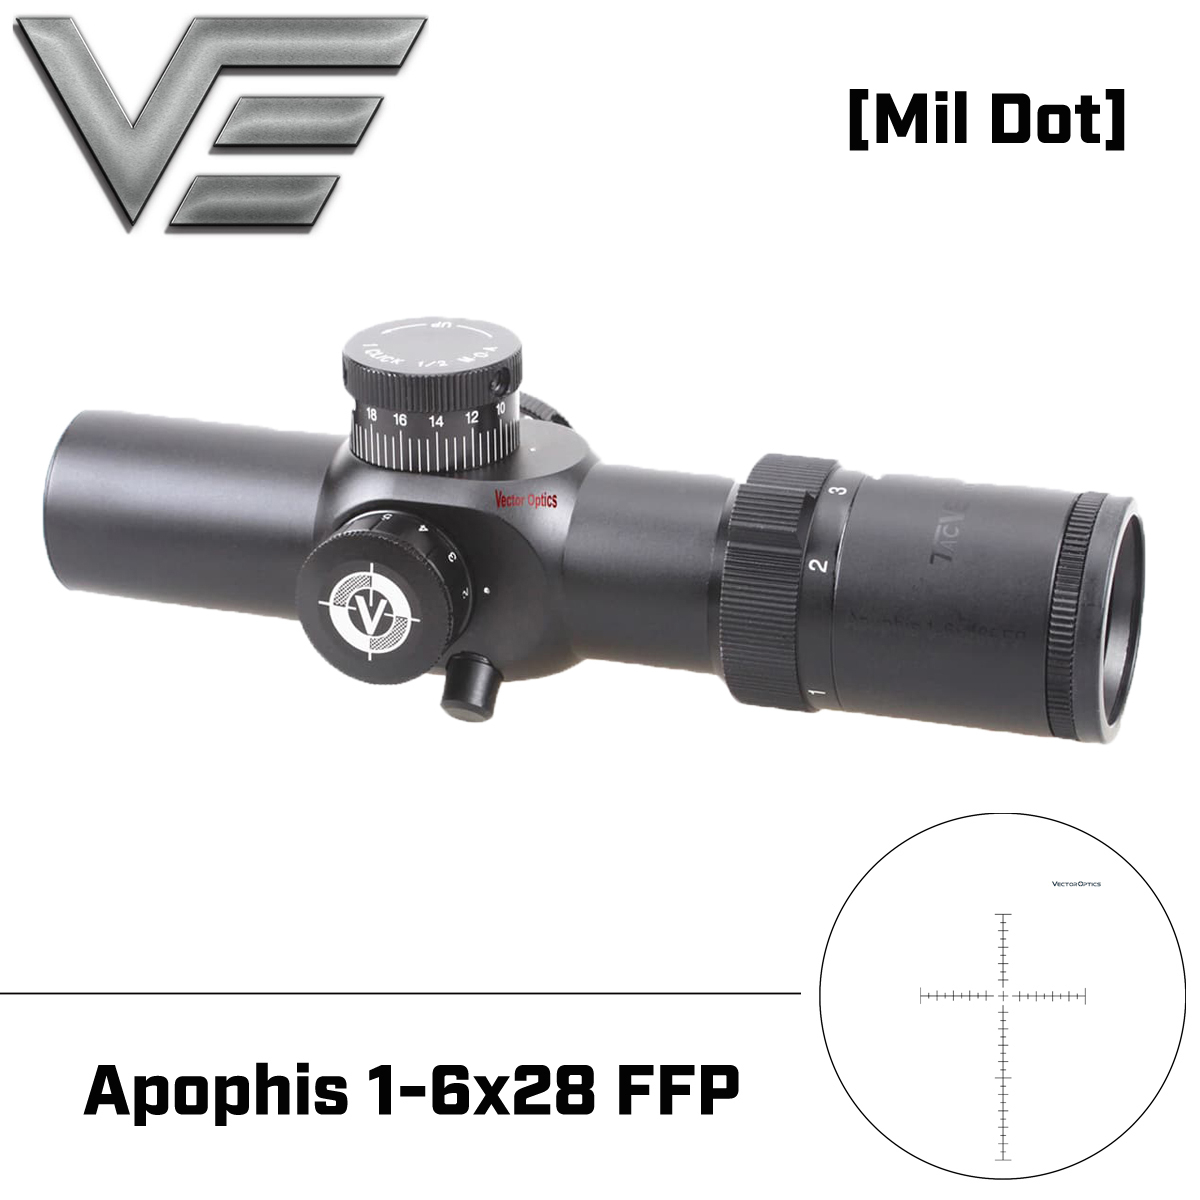 Vector Optics Apophis 1-6x28 FFP AR15 35 milímetros Tactical Riflescope Compact Rifle Scope MP Retículo MOA para Fotografar